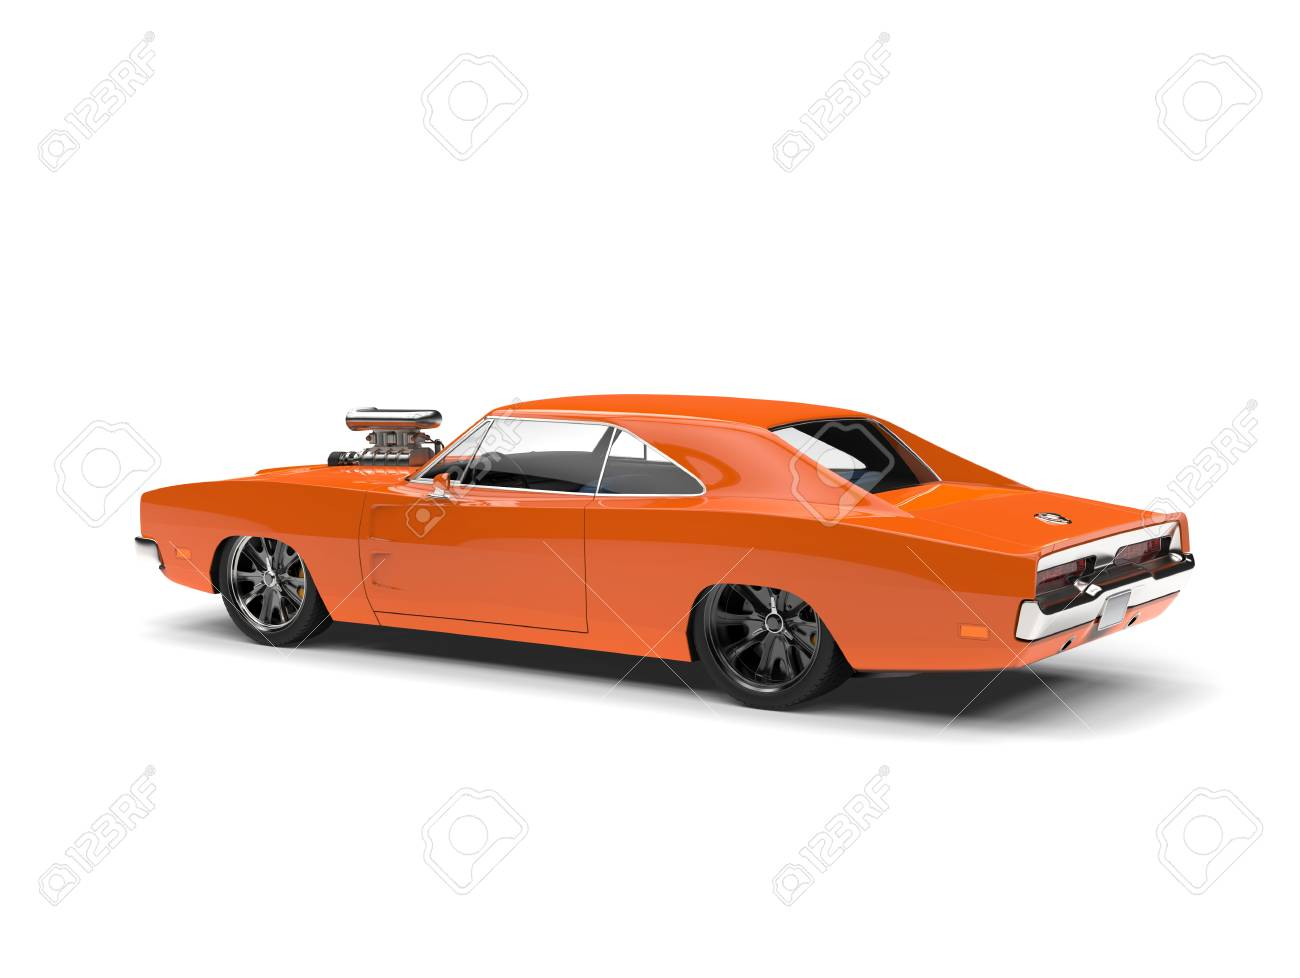 Vintage Orange American Muscle Car Rear Side View Stock Photo